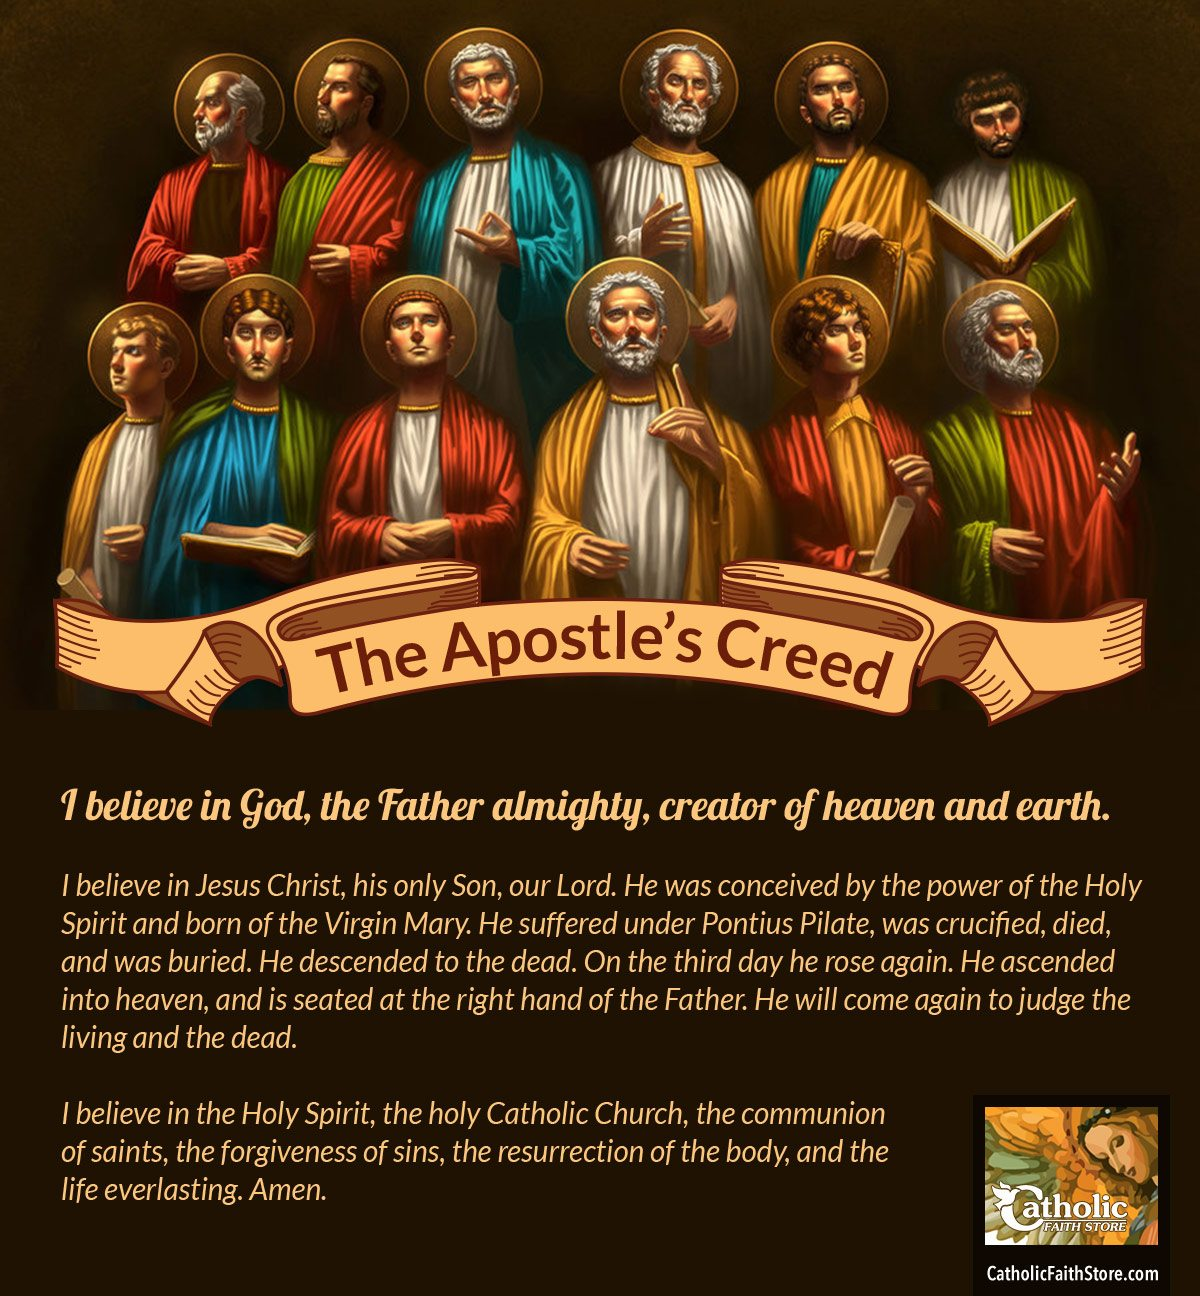 a comparison of the lords prayer and the apostles creed The creed gives a clear summary of christian belief and formed the basis for later creeds the apostles creed i believe in god the father almighty, maker of heaven and earth.